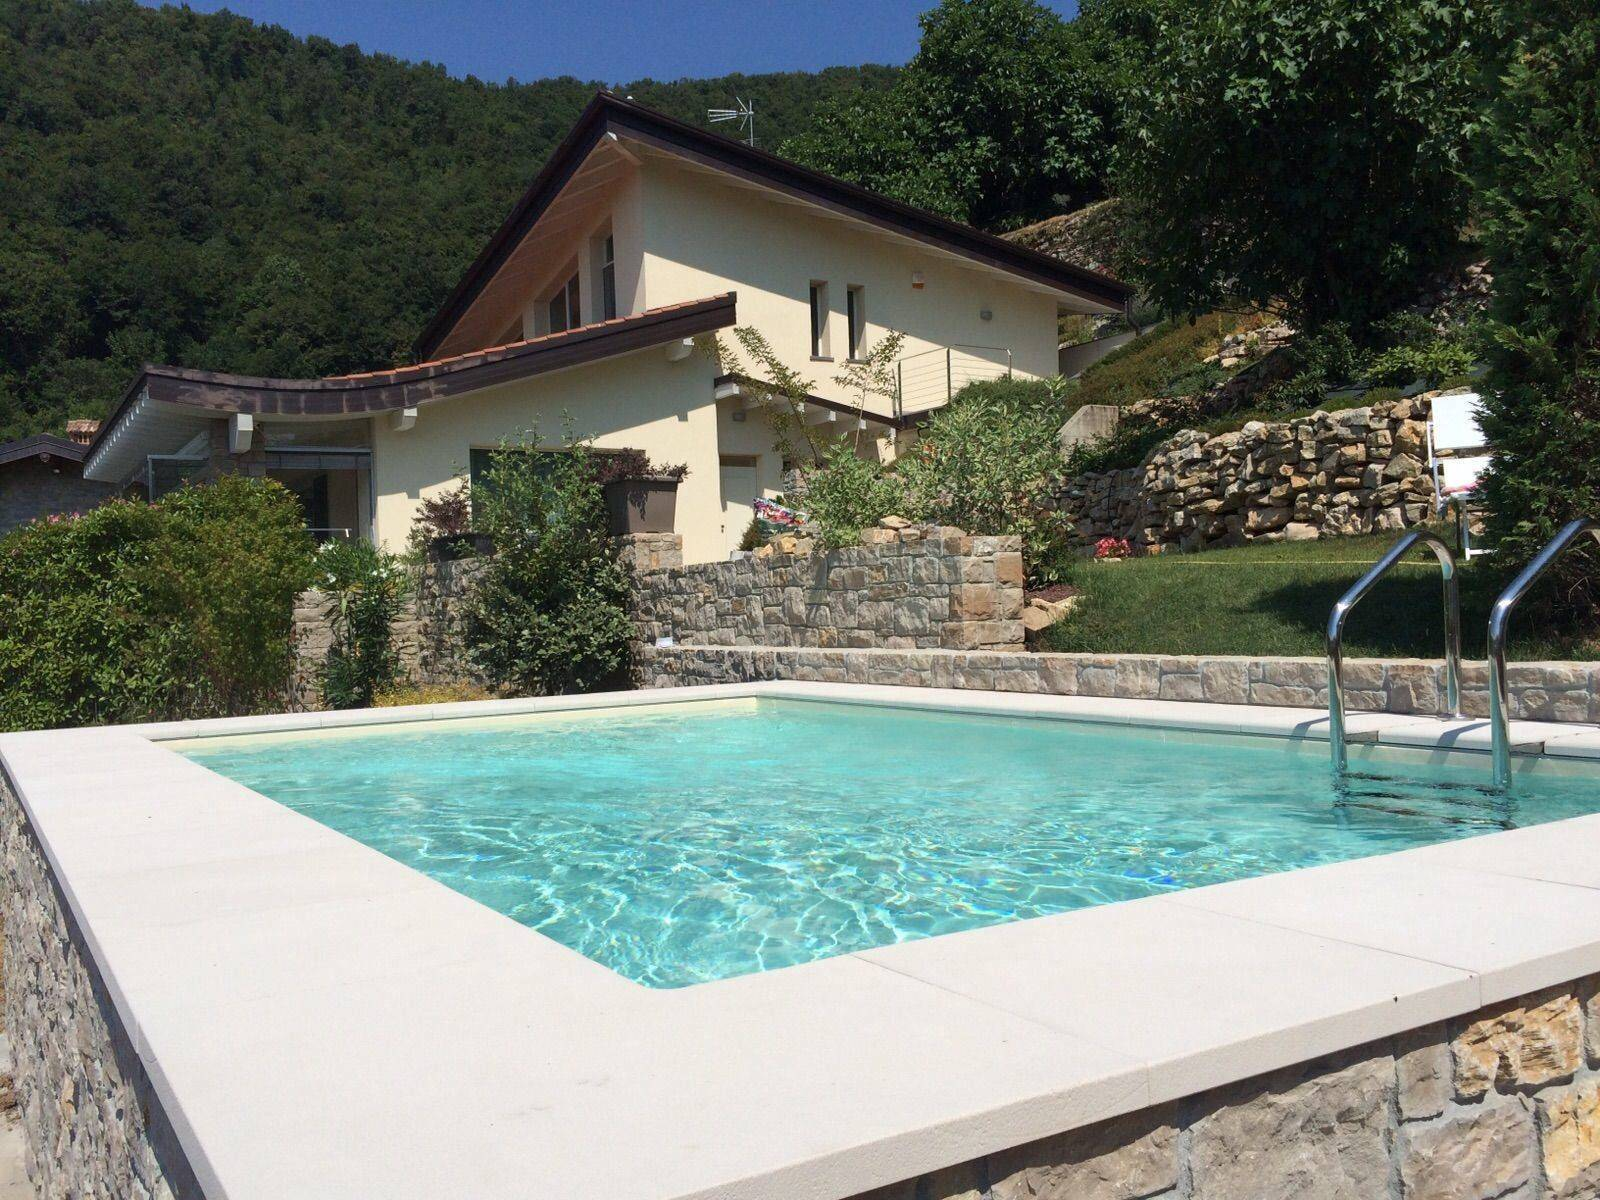 Piscine semi enterr e dolcevita gold alba for Installation piscine enterree